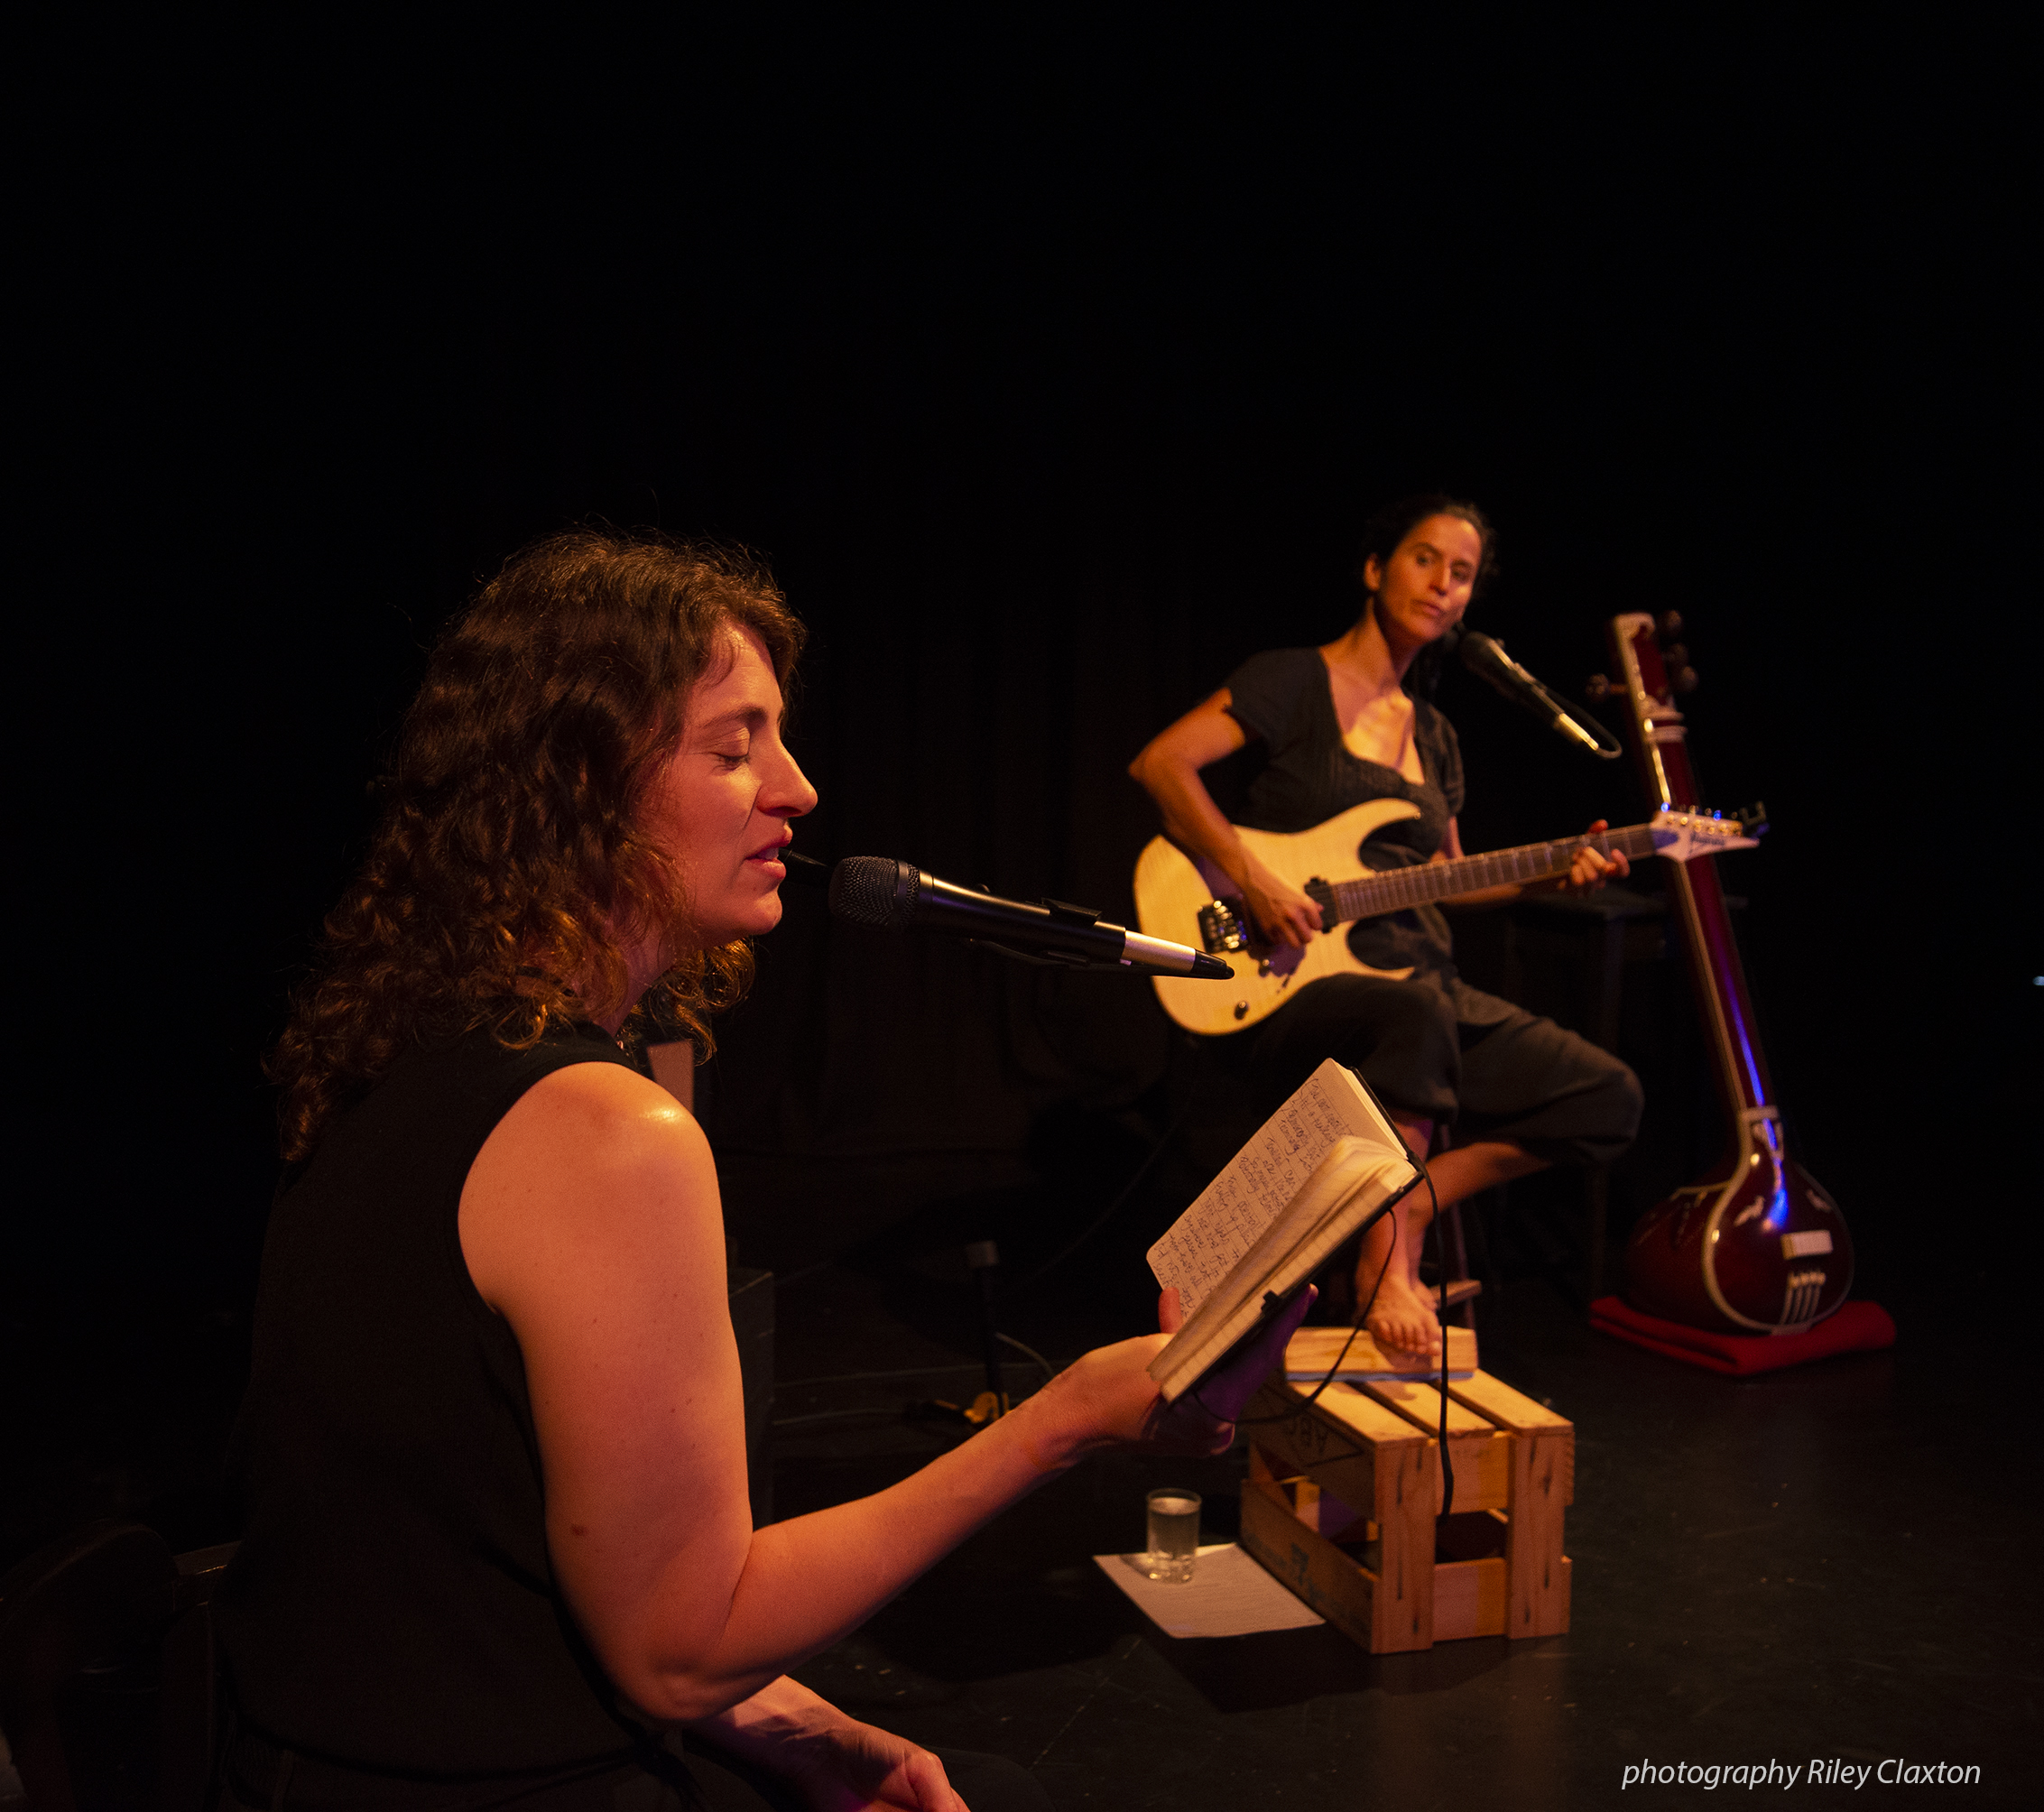 Angela Frank and Tui Mamaki perform Fly. Photo courtesy Riley Claxton